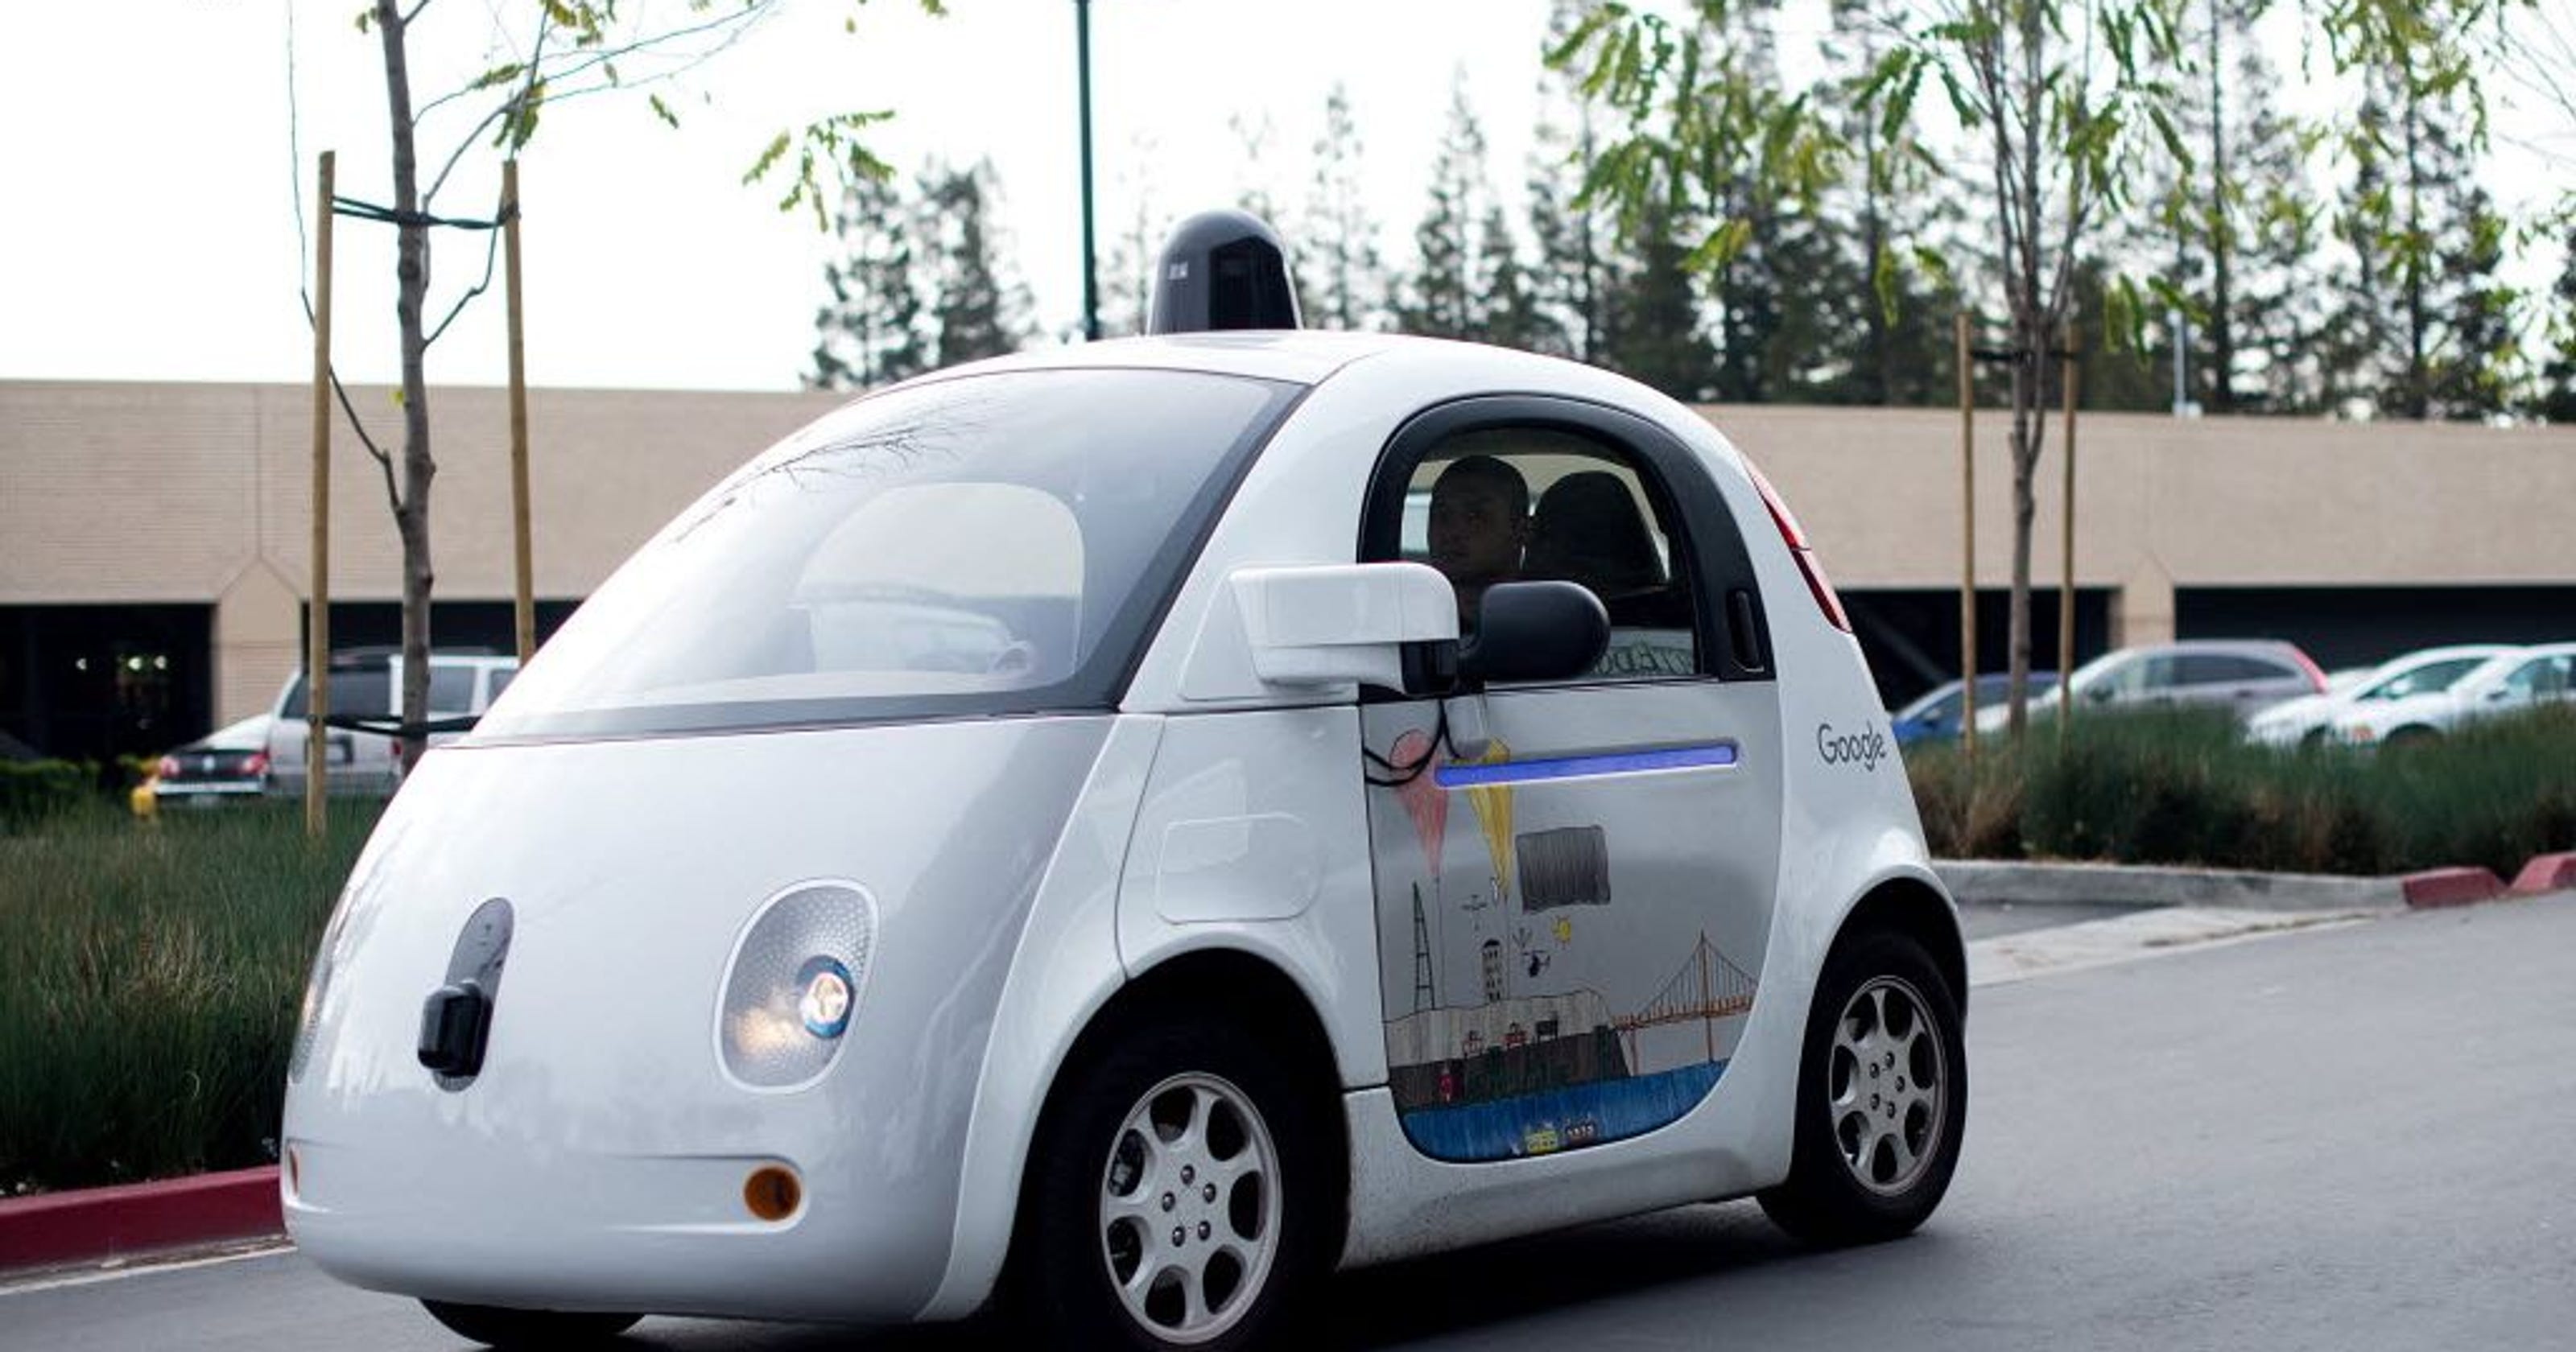 Google car hits bus, first time at fault